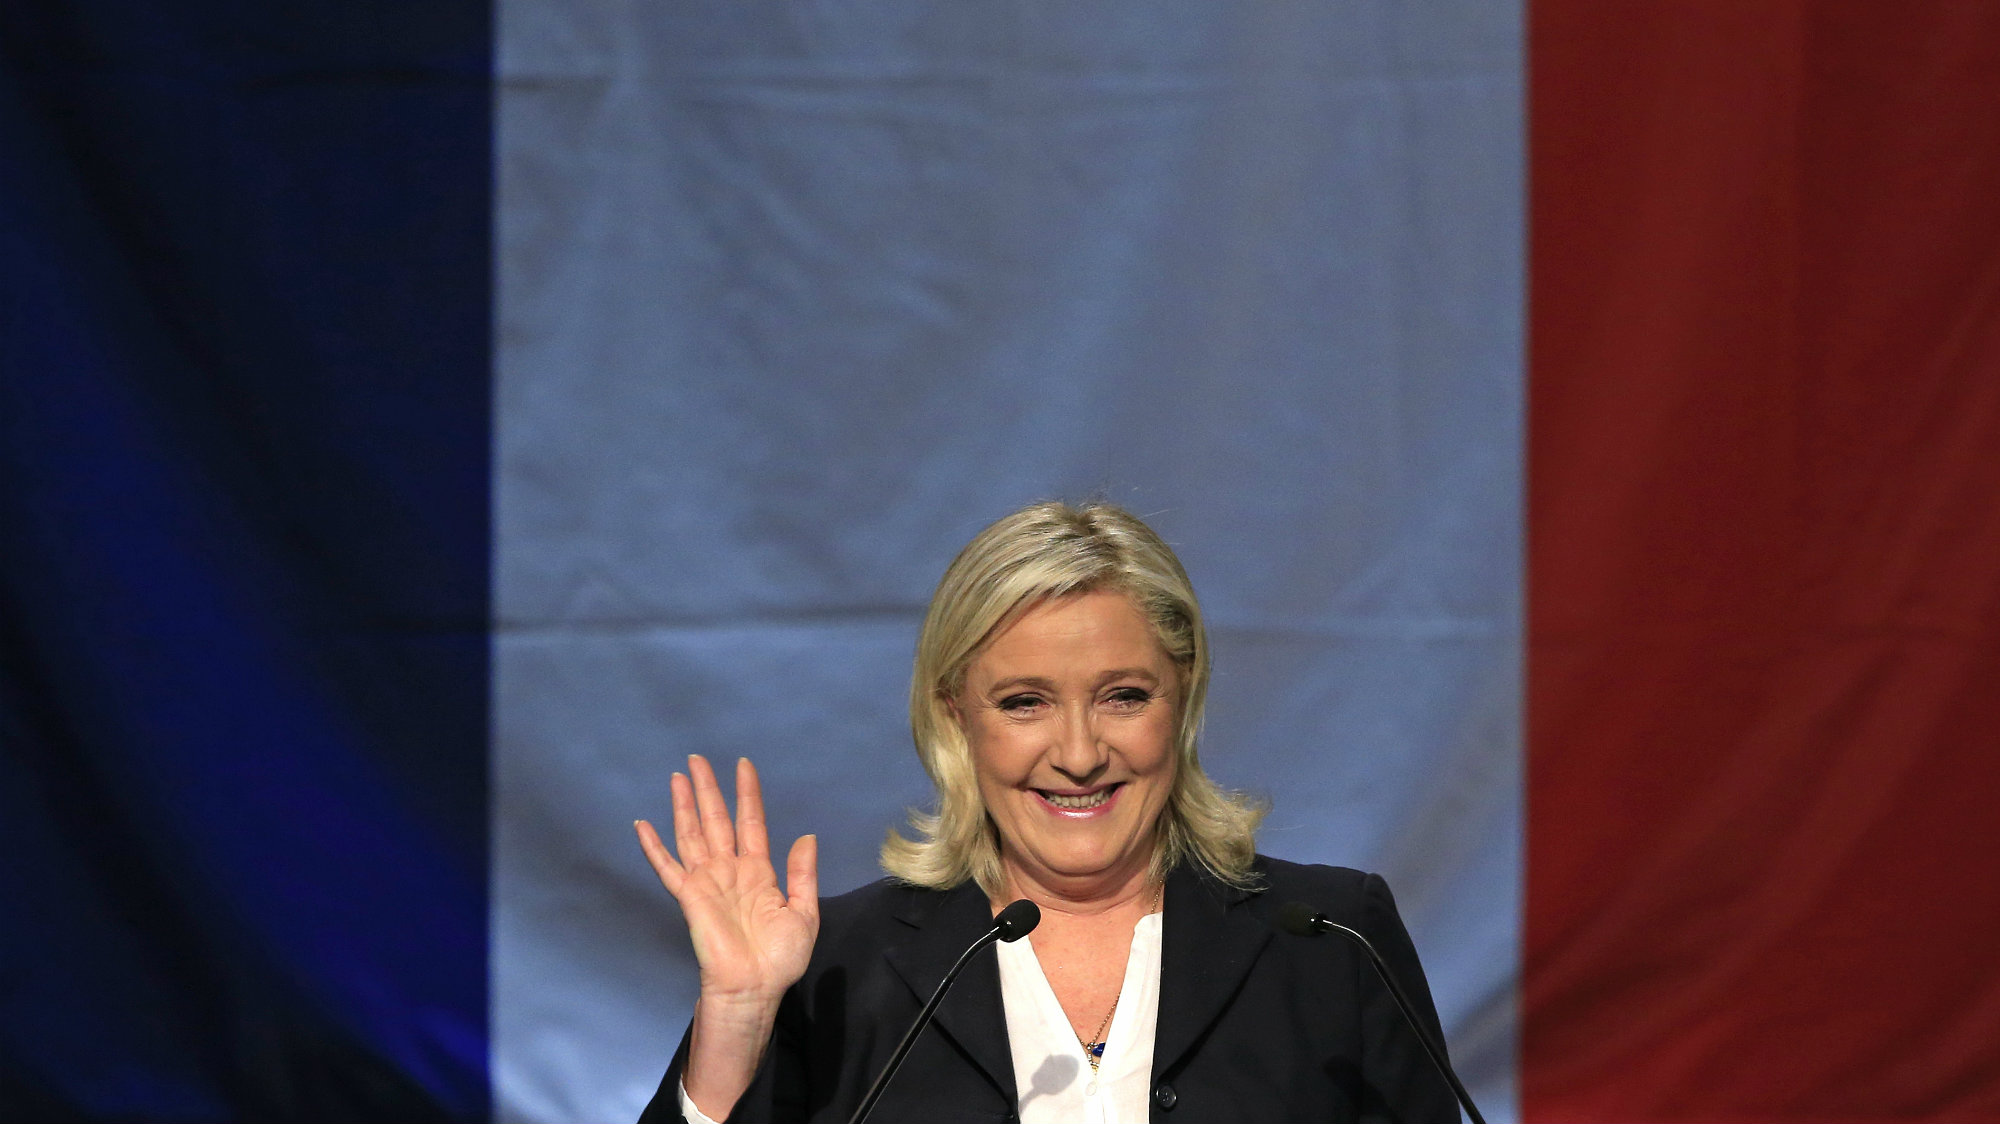 French National Front political party leader and candidate Marine Le Pen arrives to deliver her speech after the announcement of the results during the first round of the regional elections in Henin-Beaumont, France, December 6, 2015.